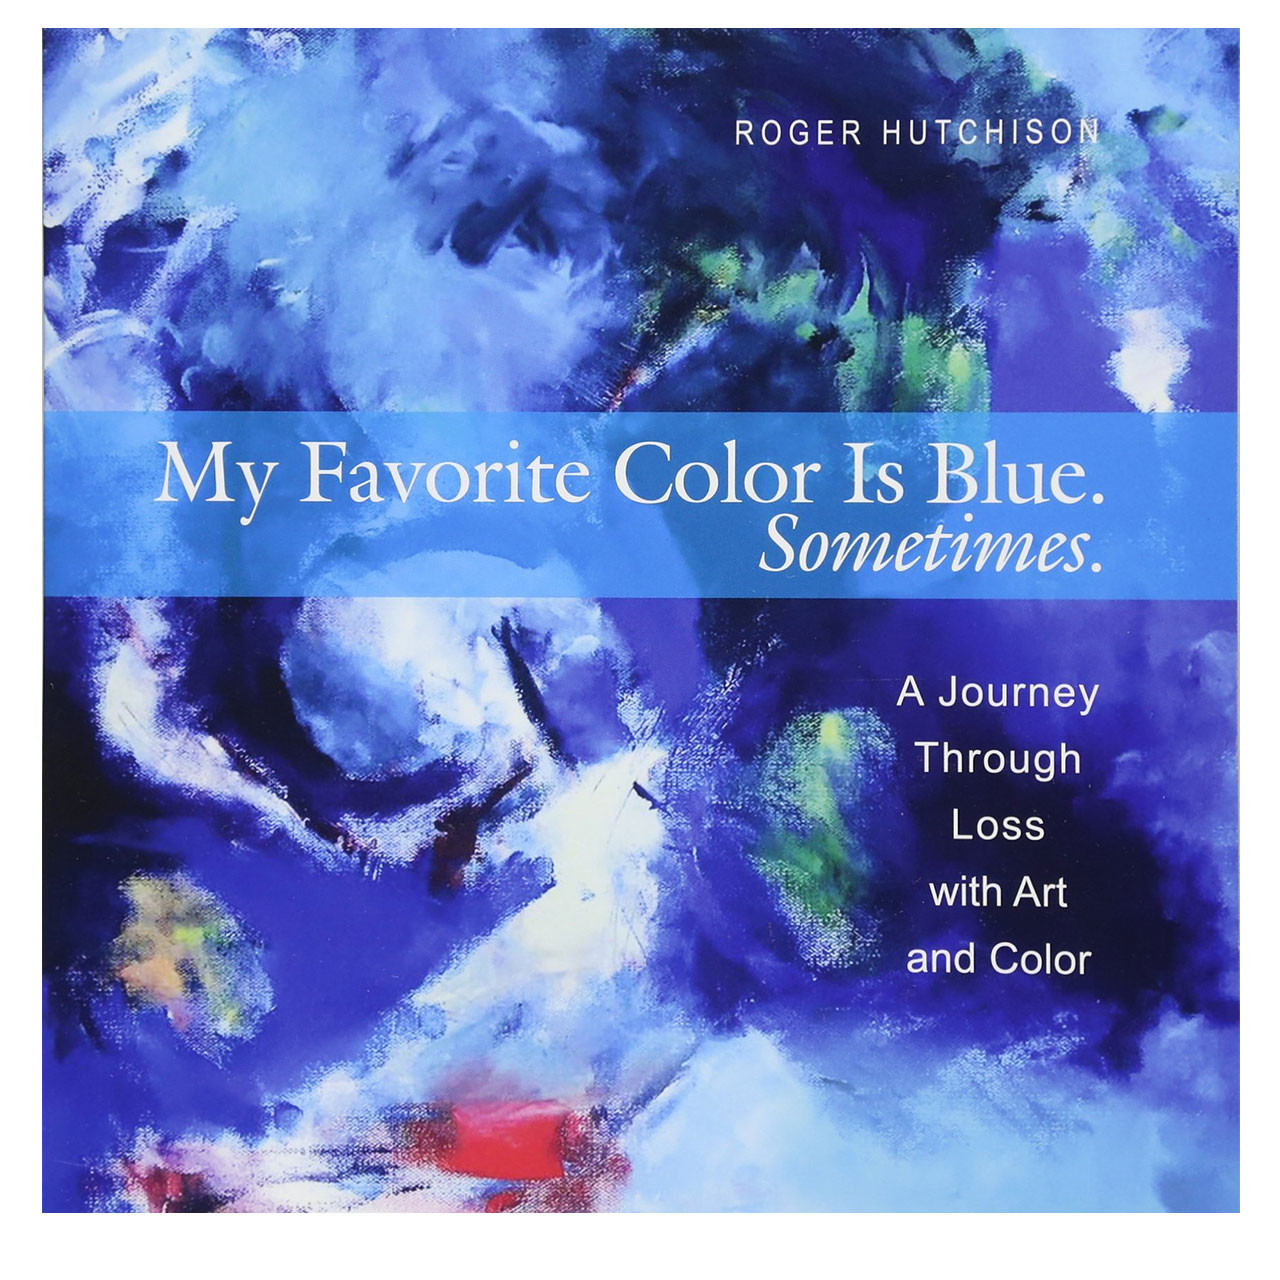 My Favorite Color is Blue. Sometimes. book cover